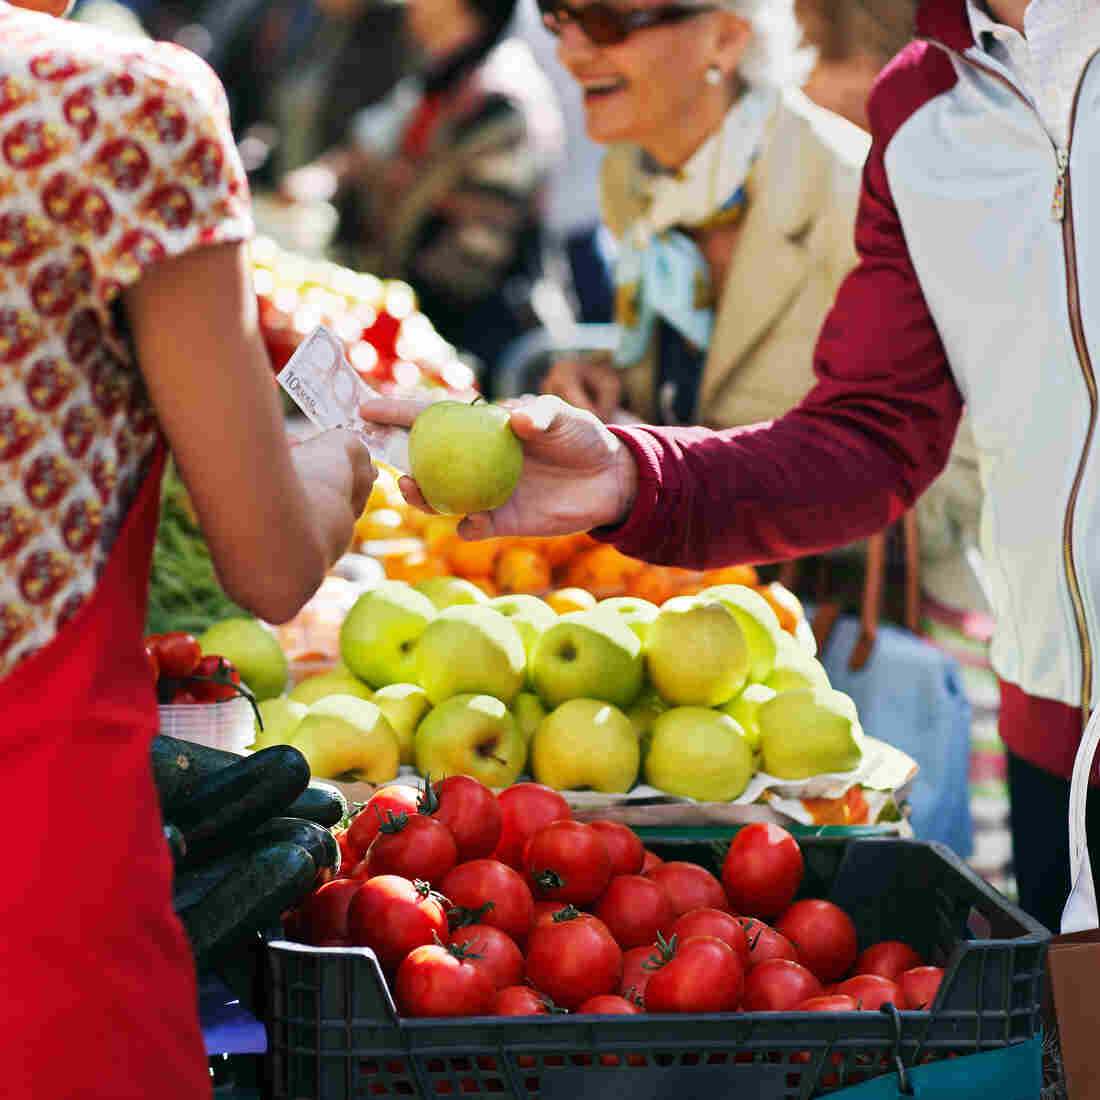 A Resolution For Foodies Who Want To Do Good: Pick A Campaign